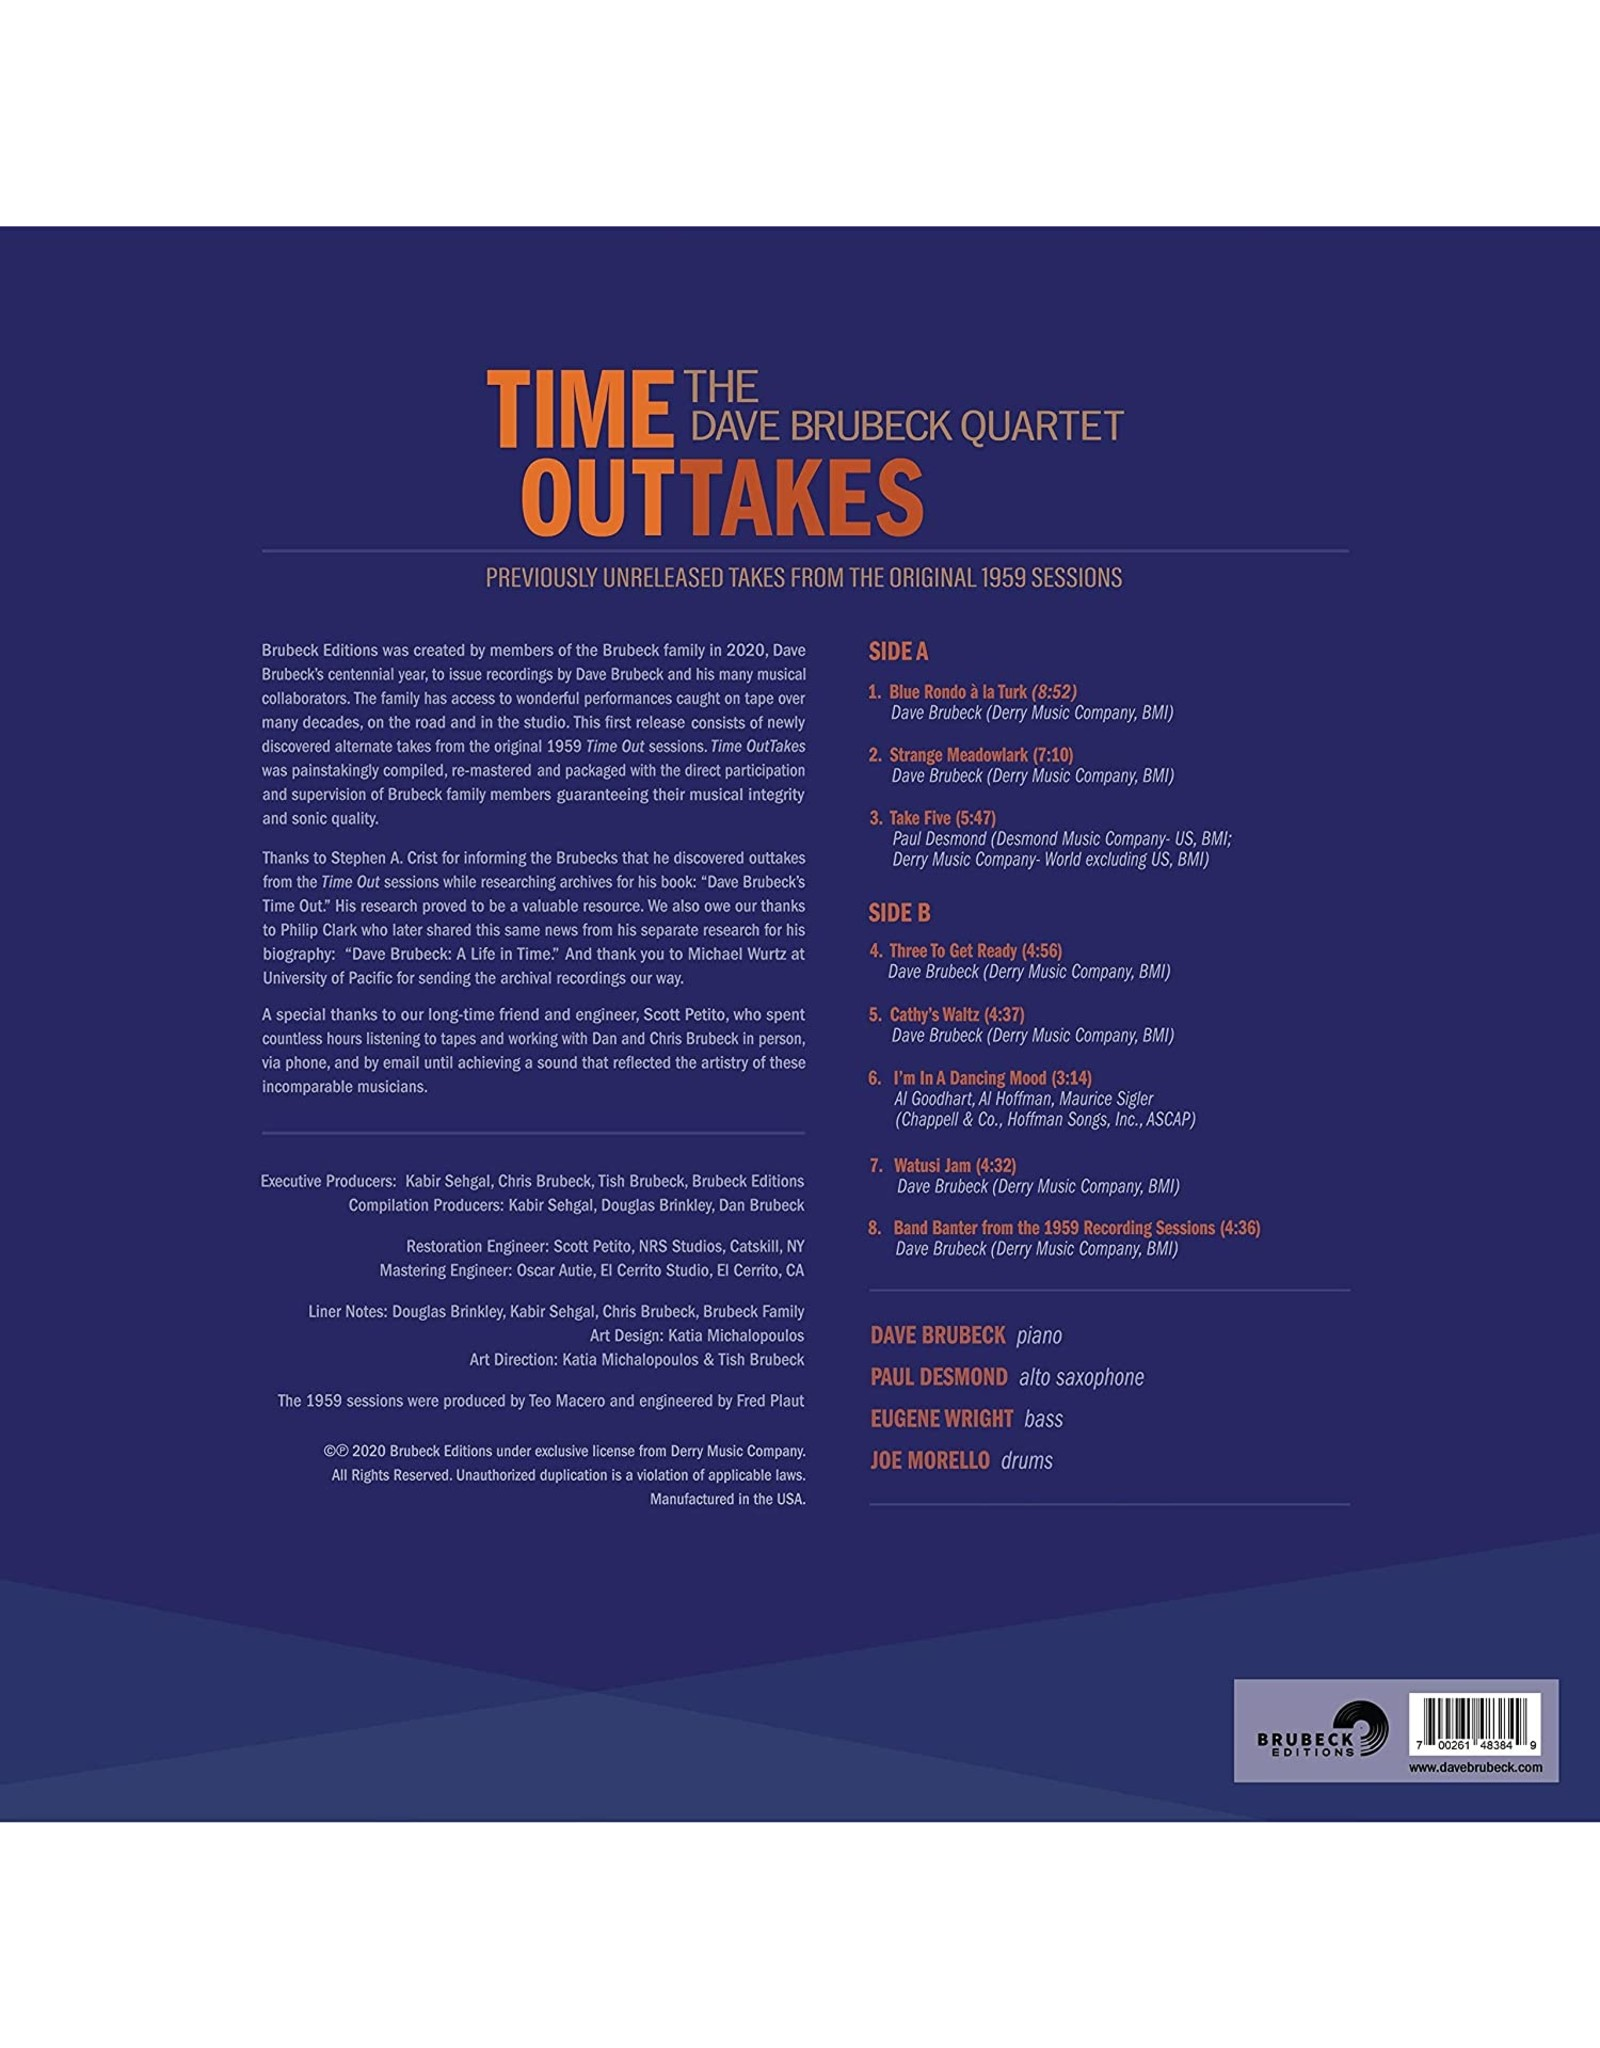 Dave Brubeck - Time OutTakes: Unreleased 1959 Sessions